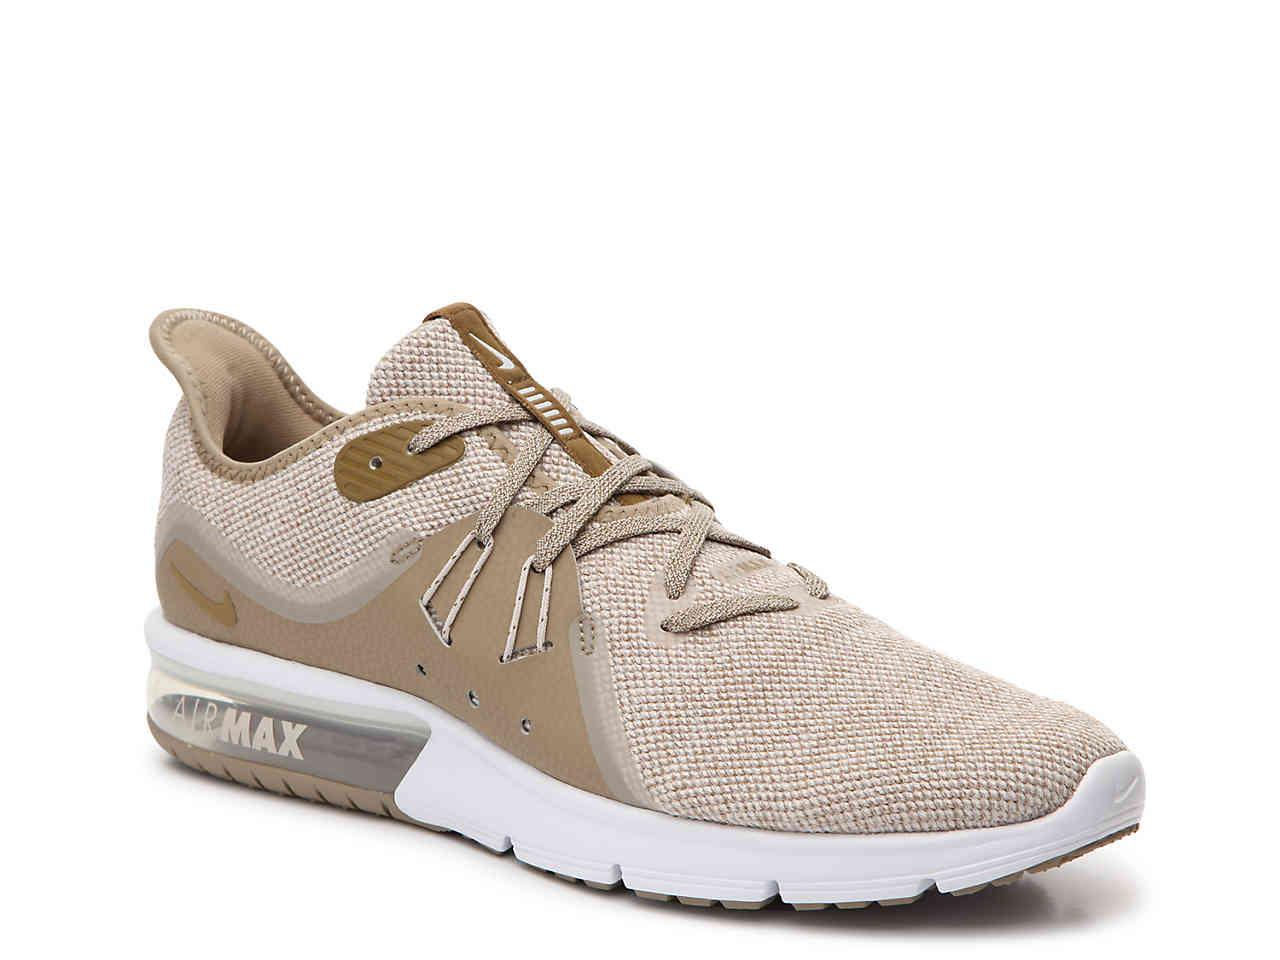 026ee60bae57 Lyst - Nike Air Max Sequent 3 Performance Running Shoe in Natural ...